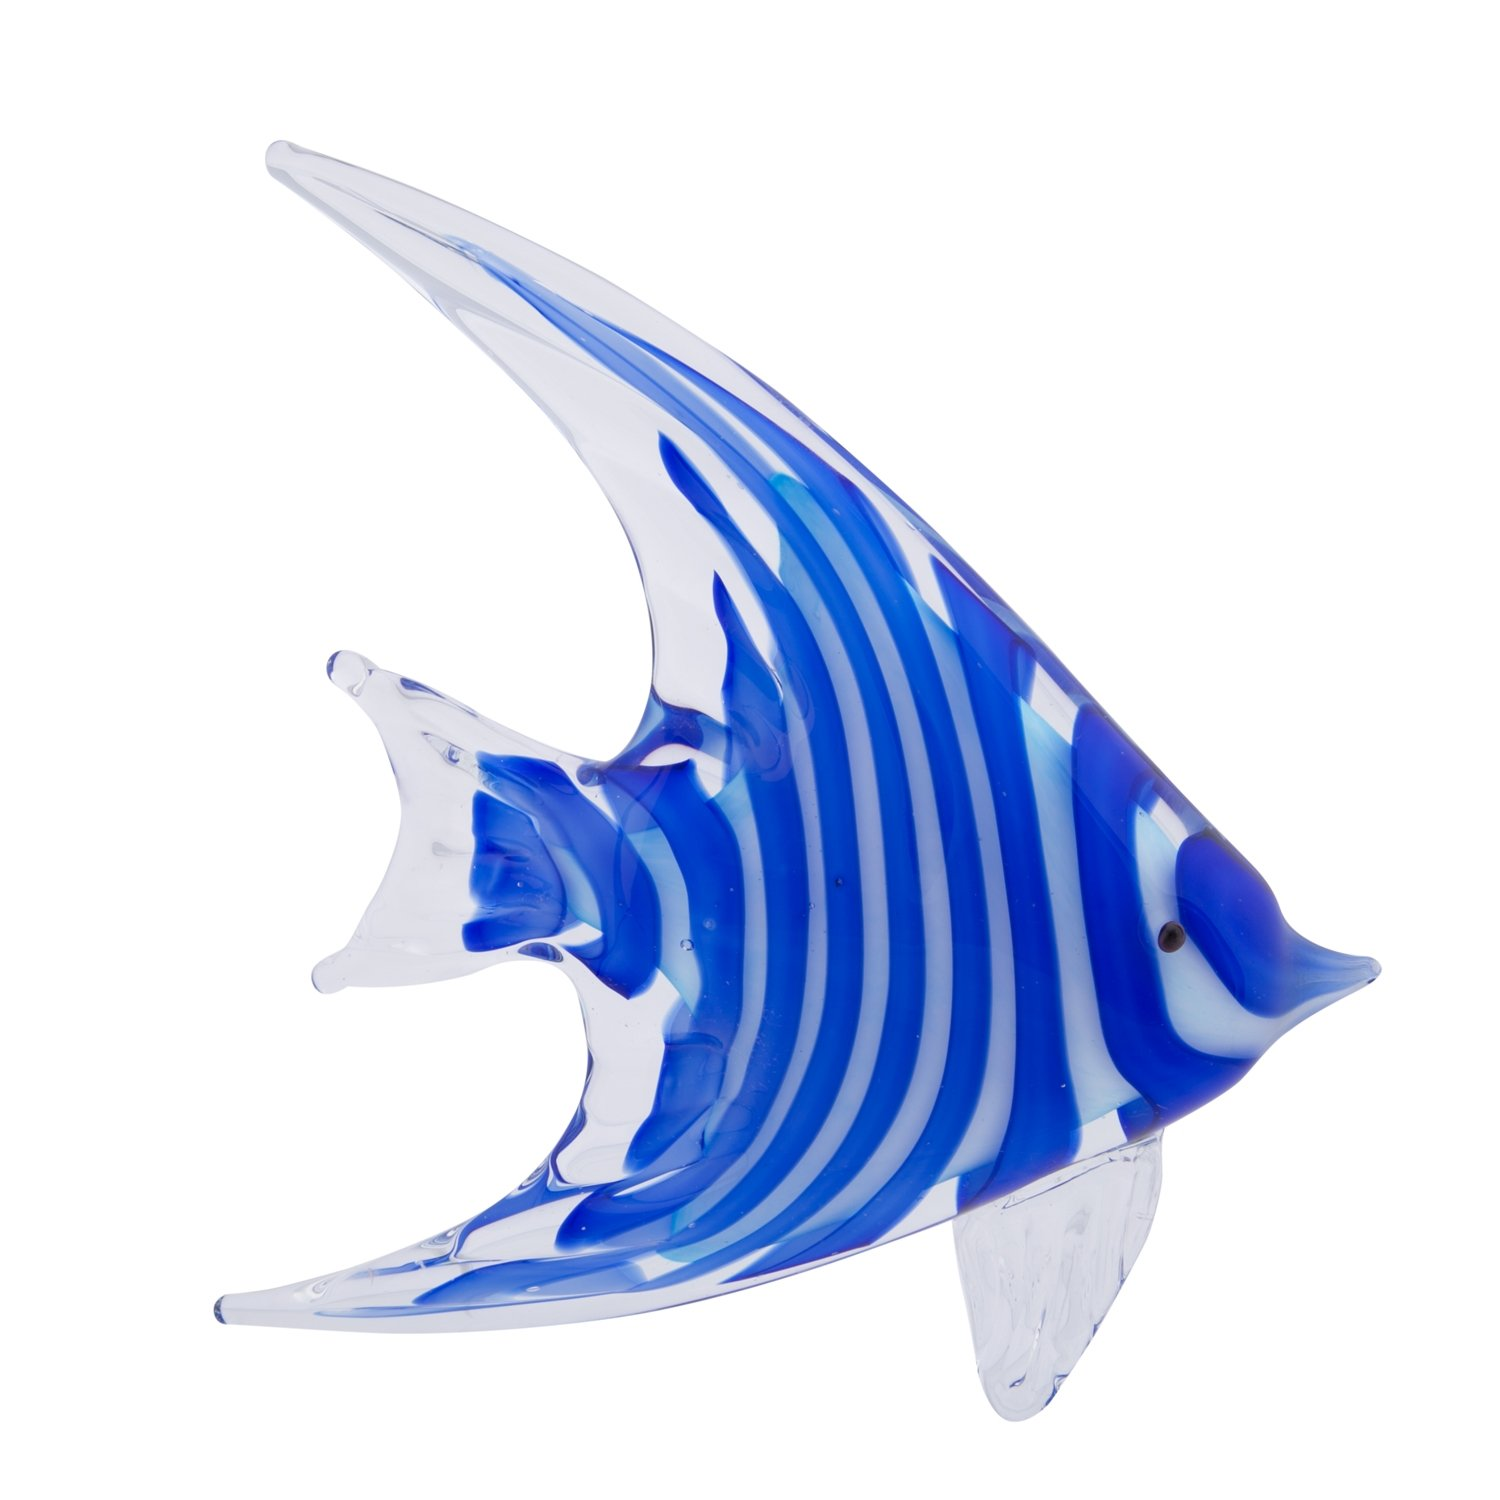 FREE Shipping to the lower 48 when spending over $35.00 Glass Handmade Blue Angel Fish